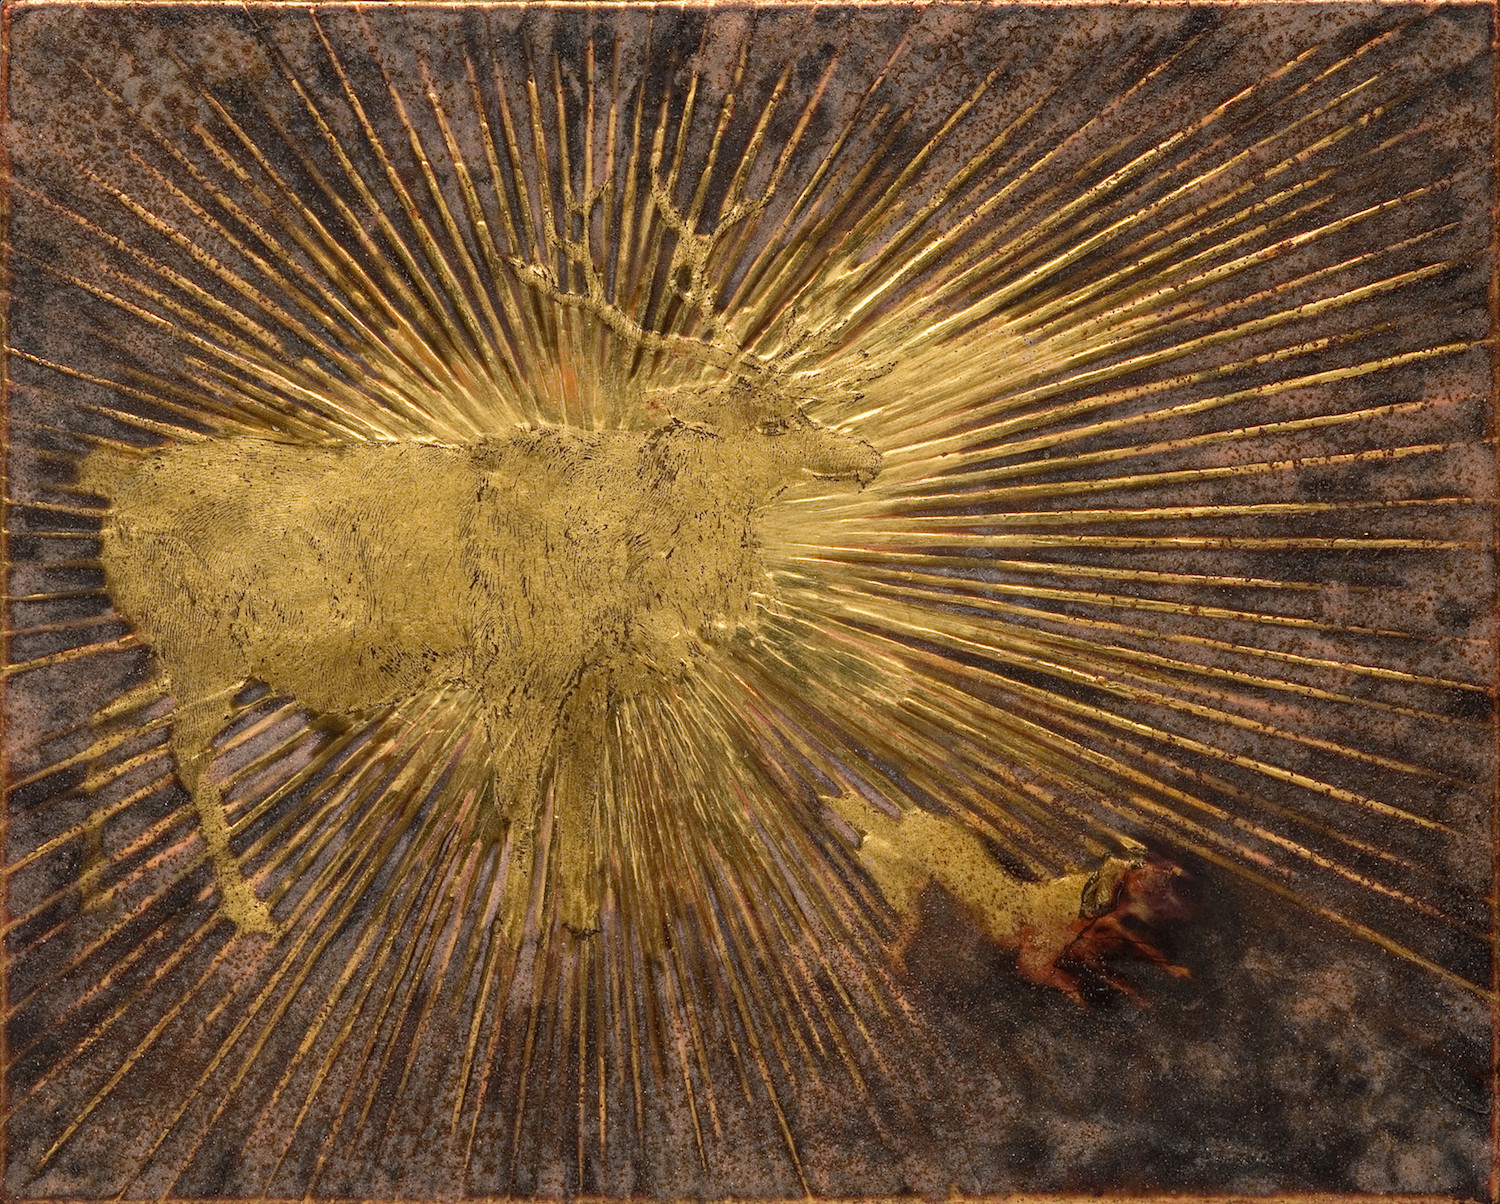 """Intaglio Prints, Polymer Emulsion, Sepia, Rust, Hide Glue, Marble Dust, Bole, and Gold Leaf on Linen over Panel. 10"""" x 12""""."""